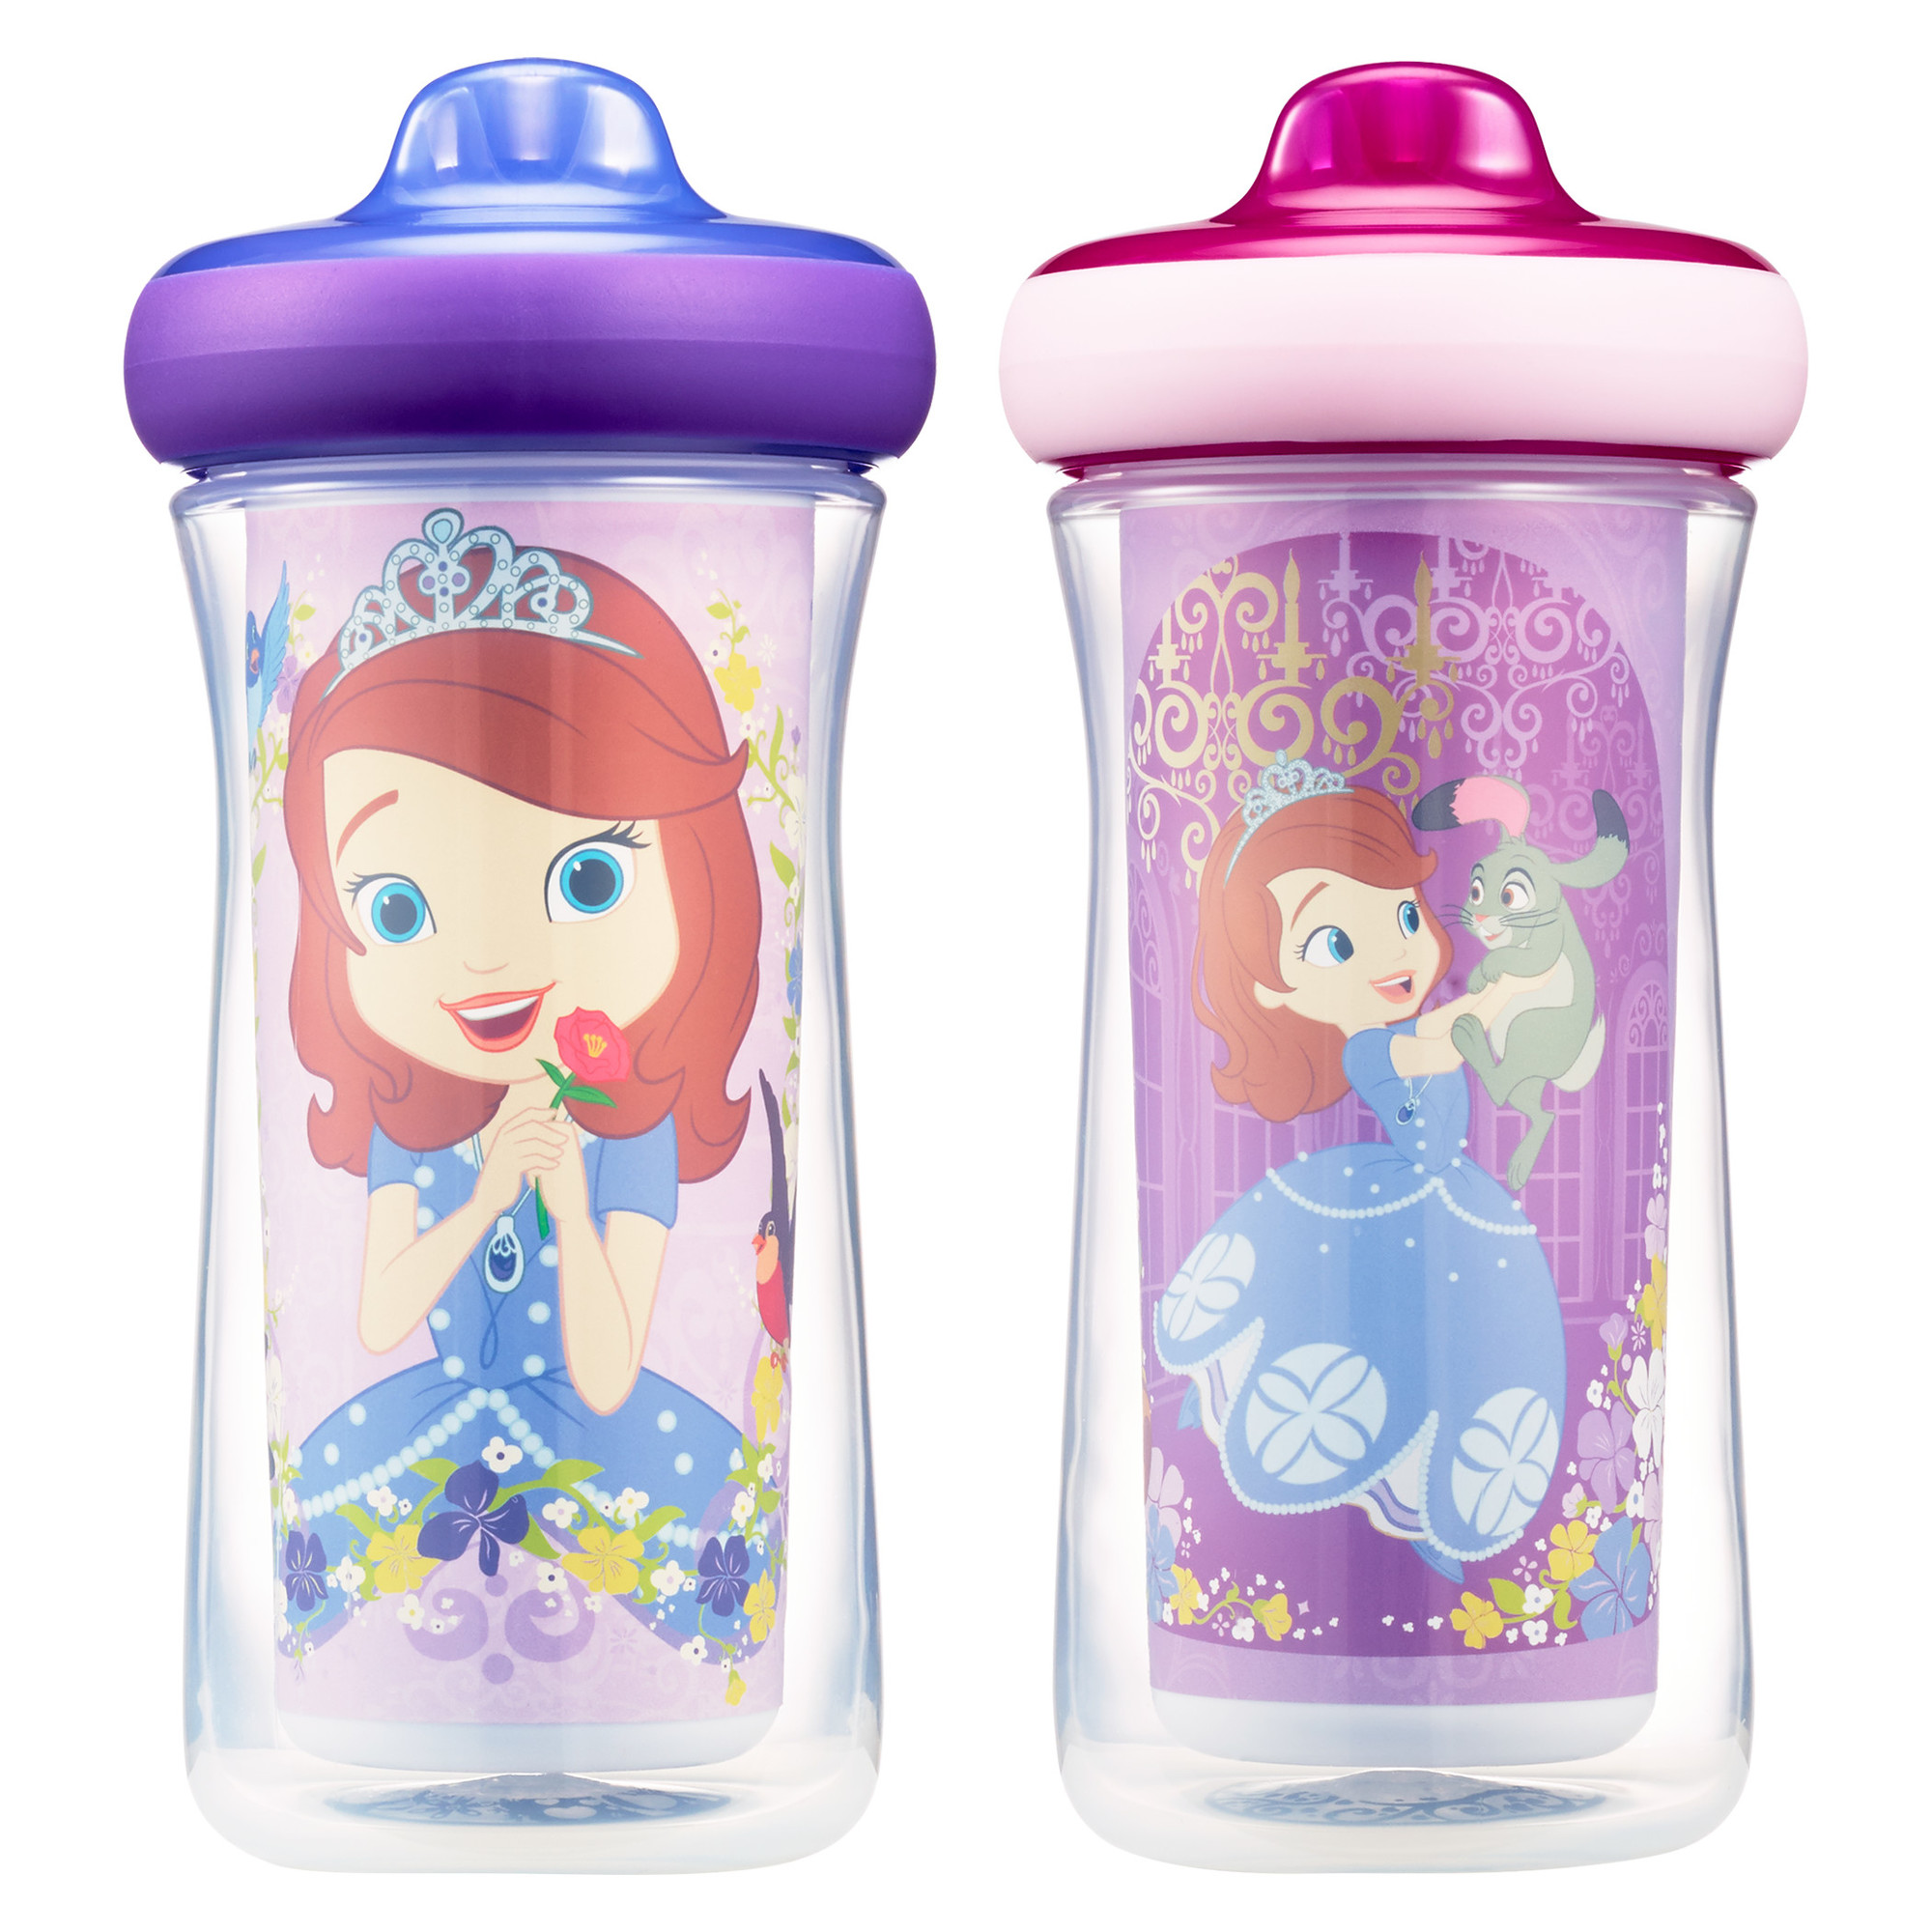 Disney Sofia Insulated Hard Spout Sippy Cups 9 Oz, 2pk | Scan with Free Share the Smiles App for Cute Animation | Share with Friends | Leak Proof Cups | Keeps Drinks Cool | Drop Guard |Toddler Cup